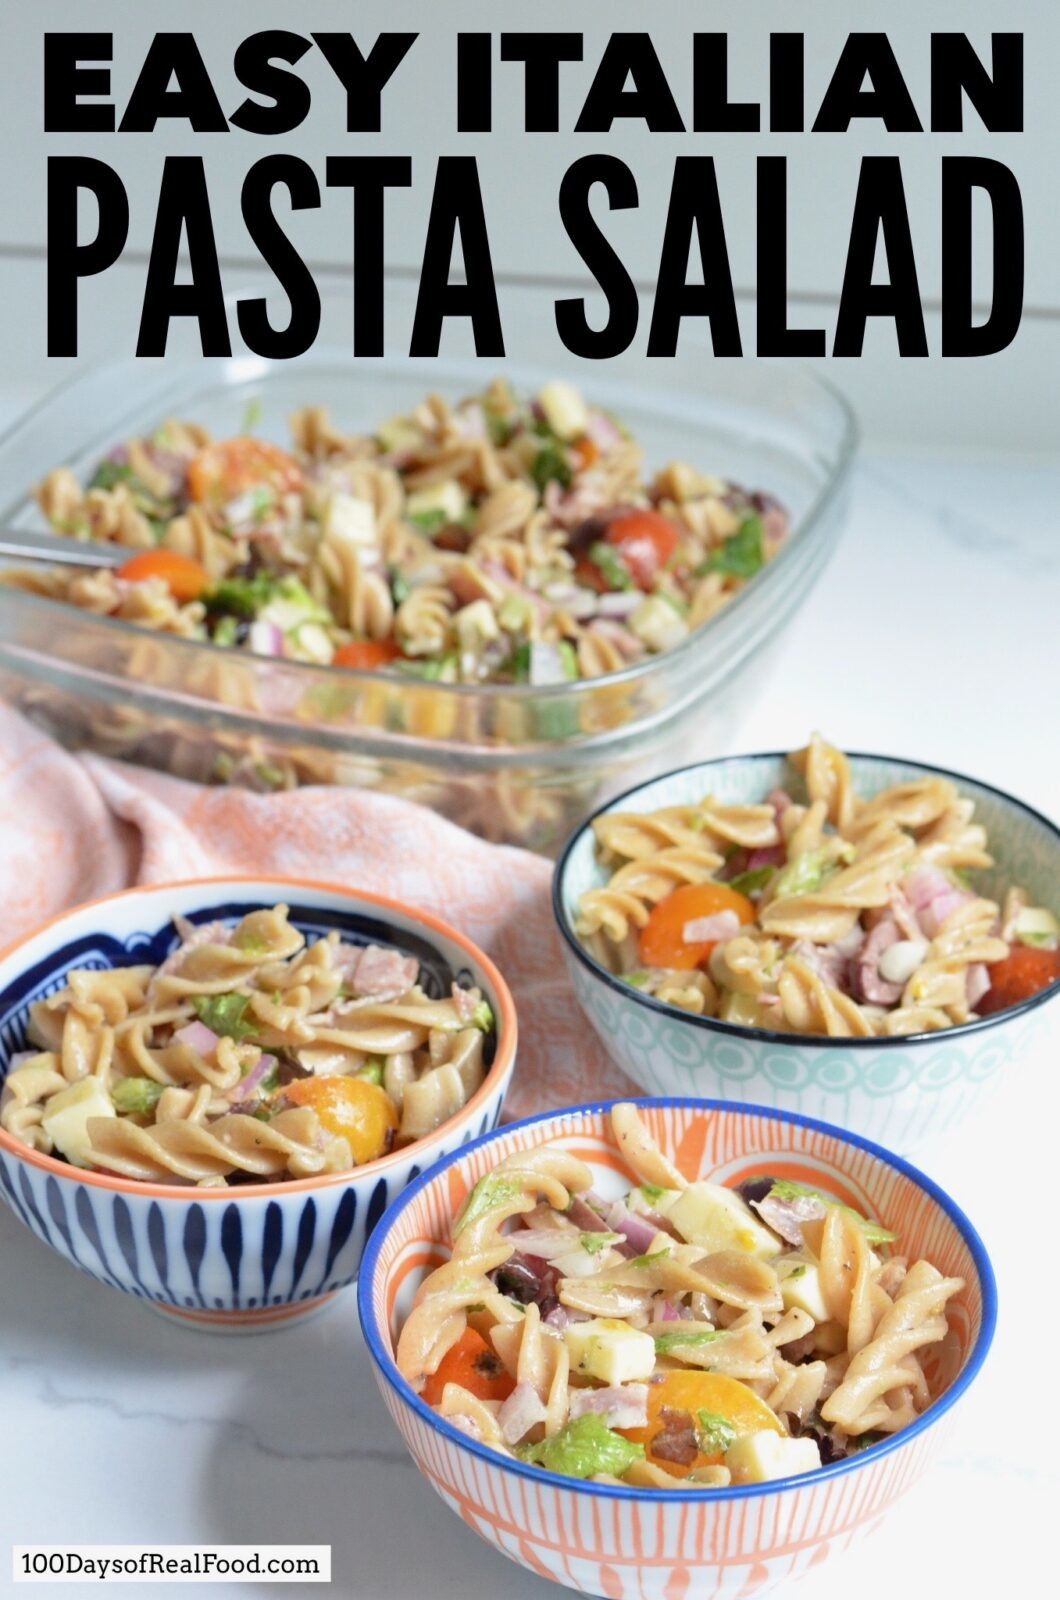 Four colorful bowls of homemade Italian pasta salad on the counter.